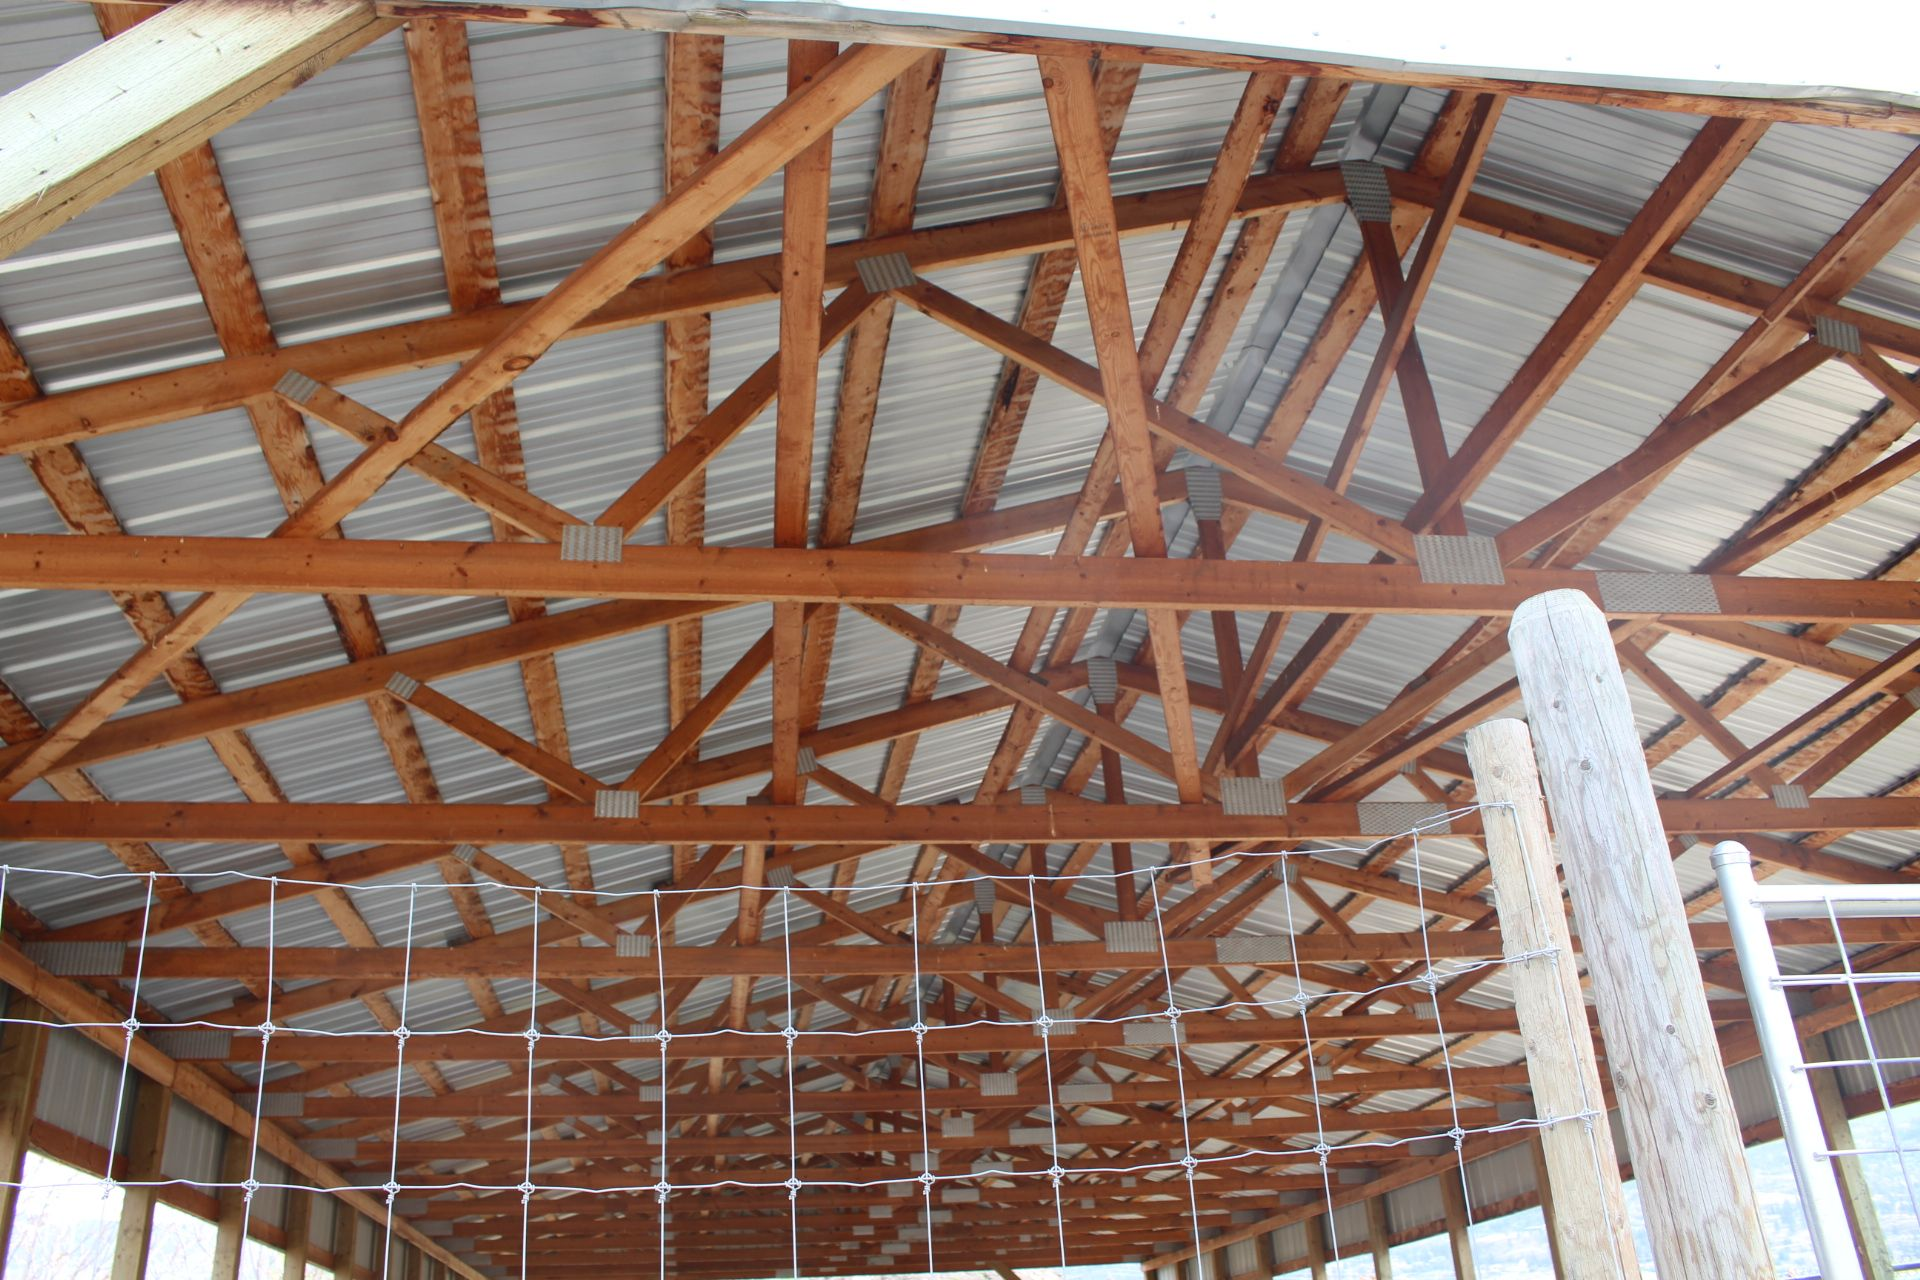 POLE BUILDING, 33' X 80' WOOD TRUSS, METAL CLAD ROOF - Image 2 of 3